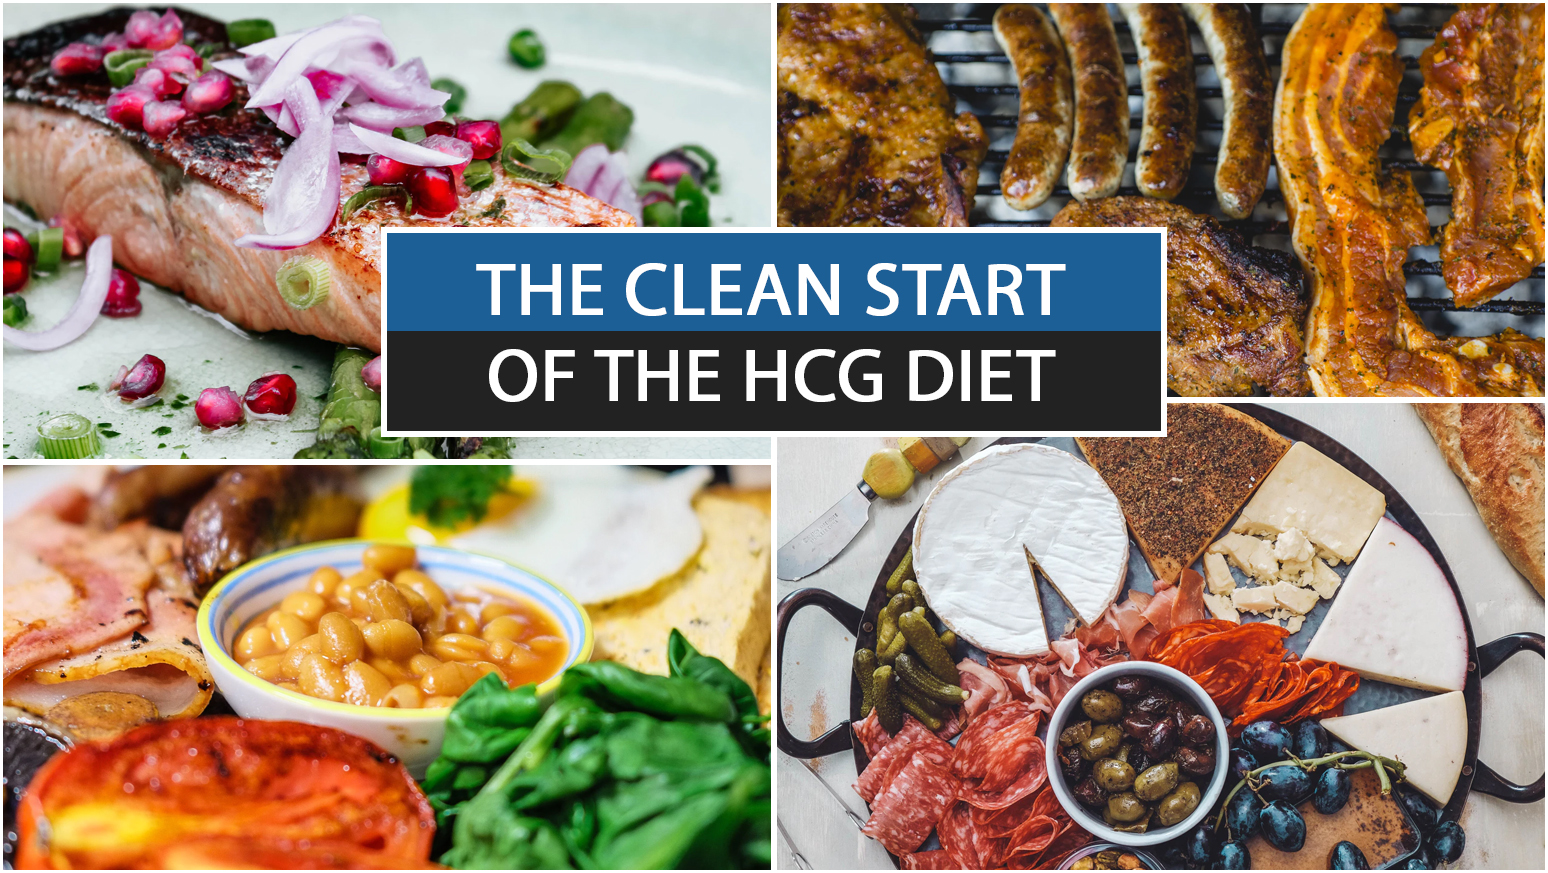 THE CLEAN START OF THE HCG DIET